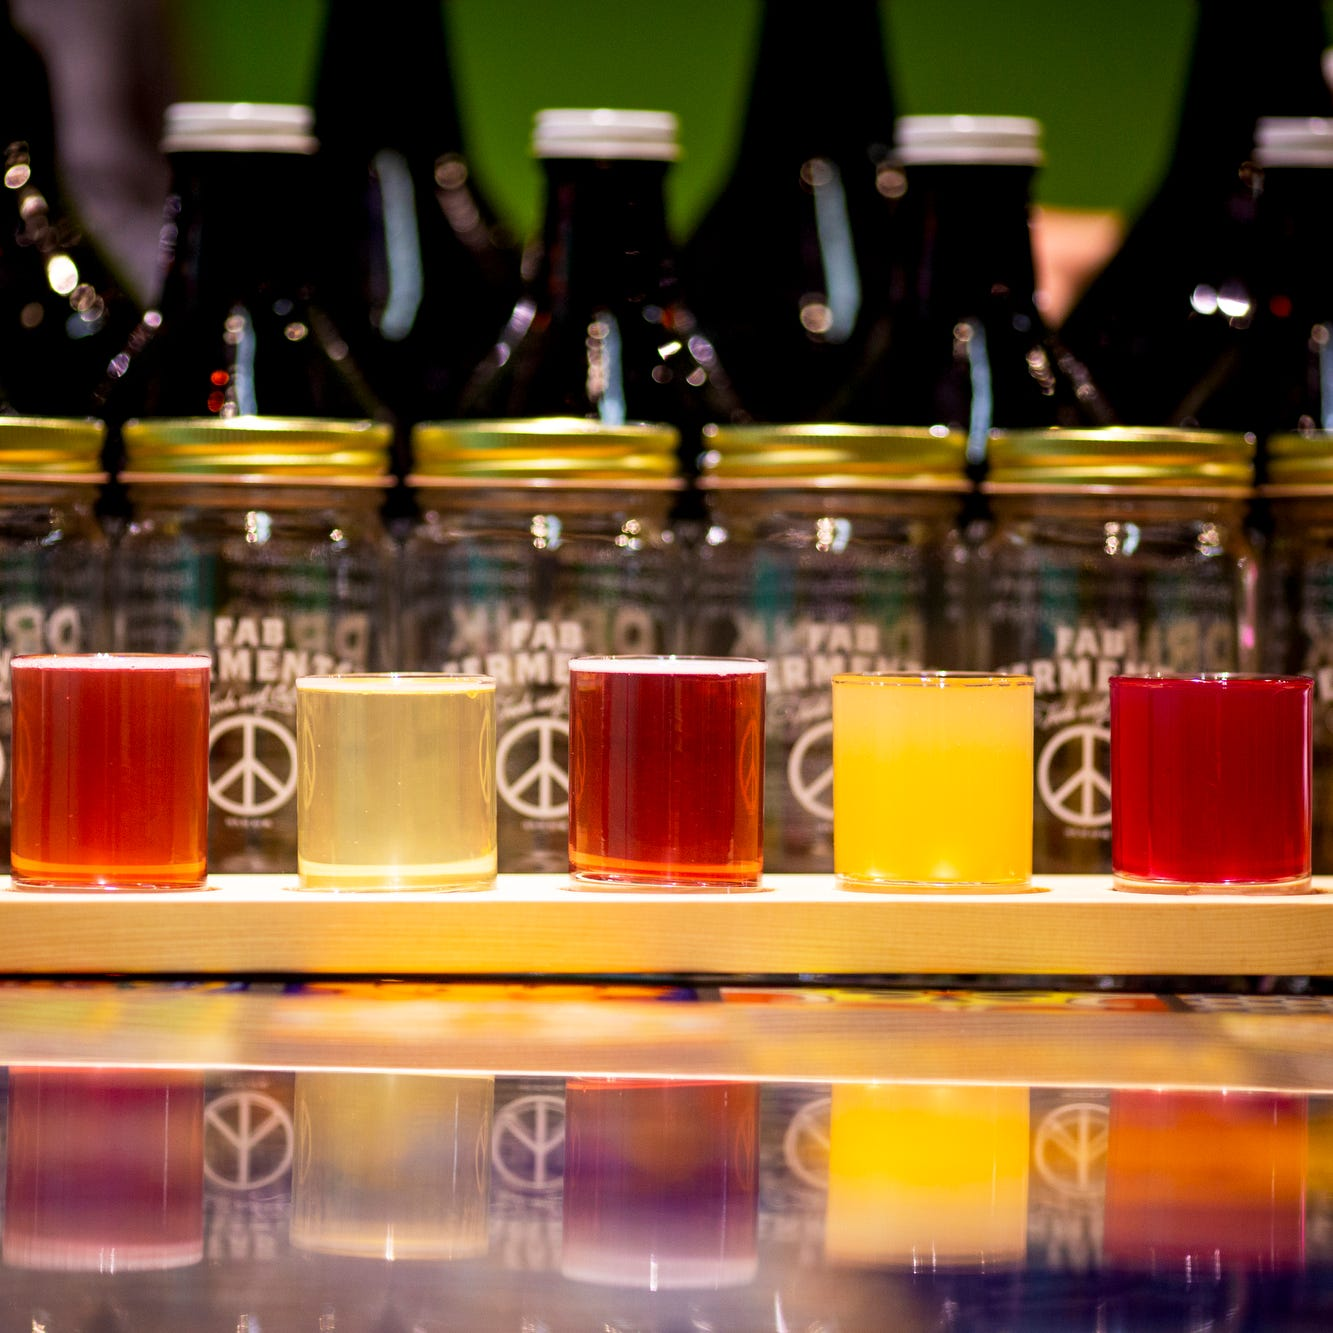 Fab Ferments has eleven different kombuchas on...